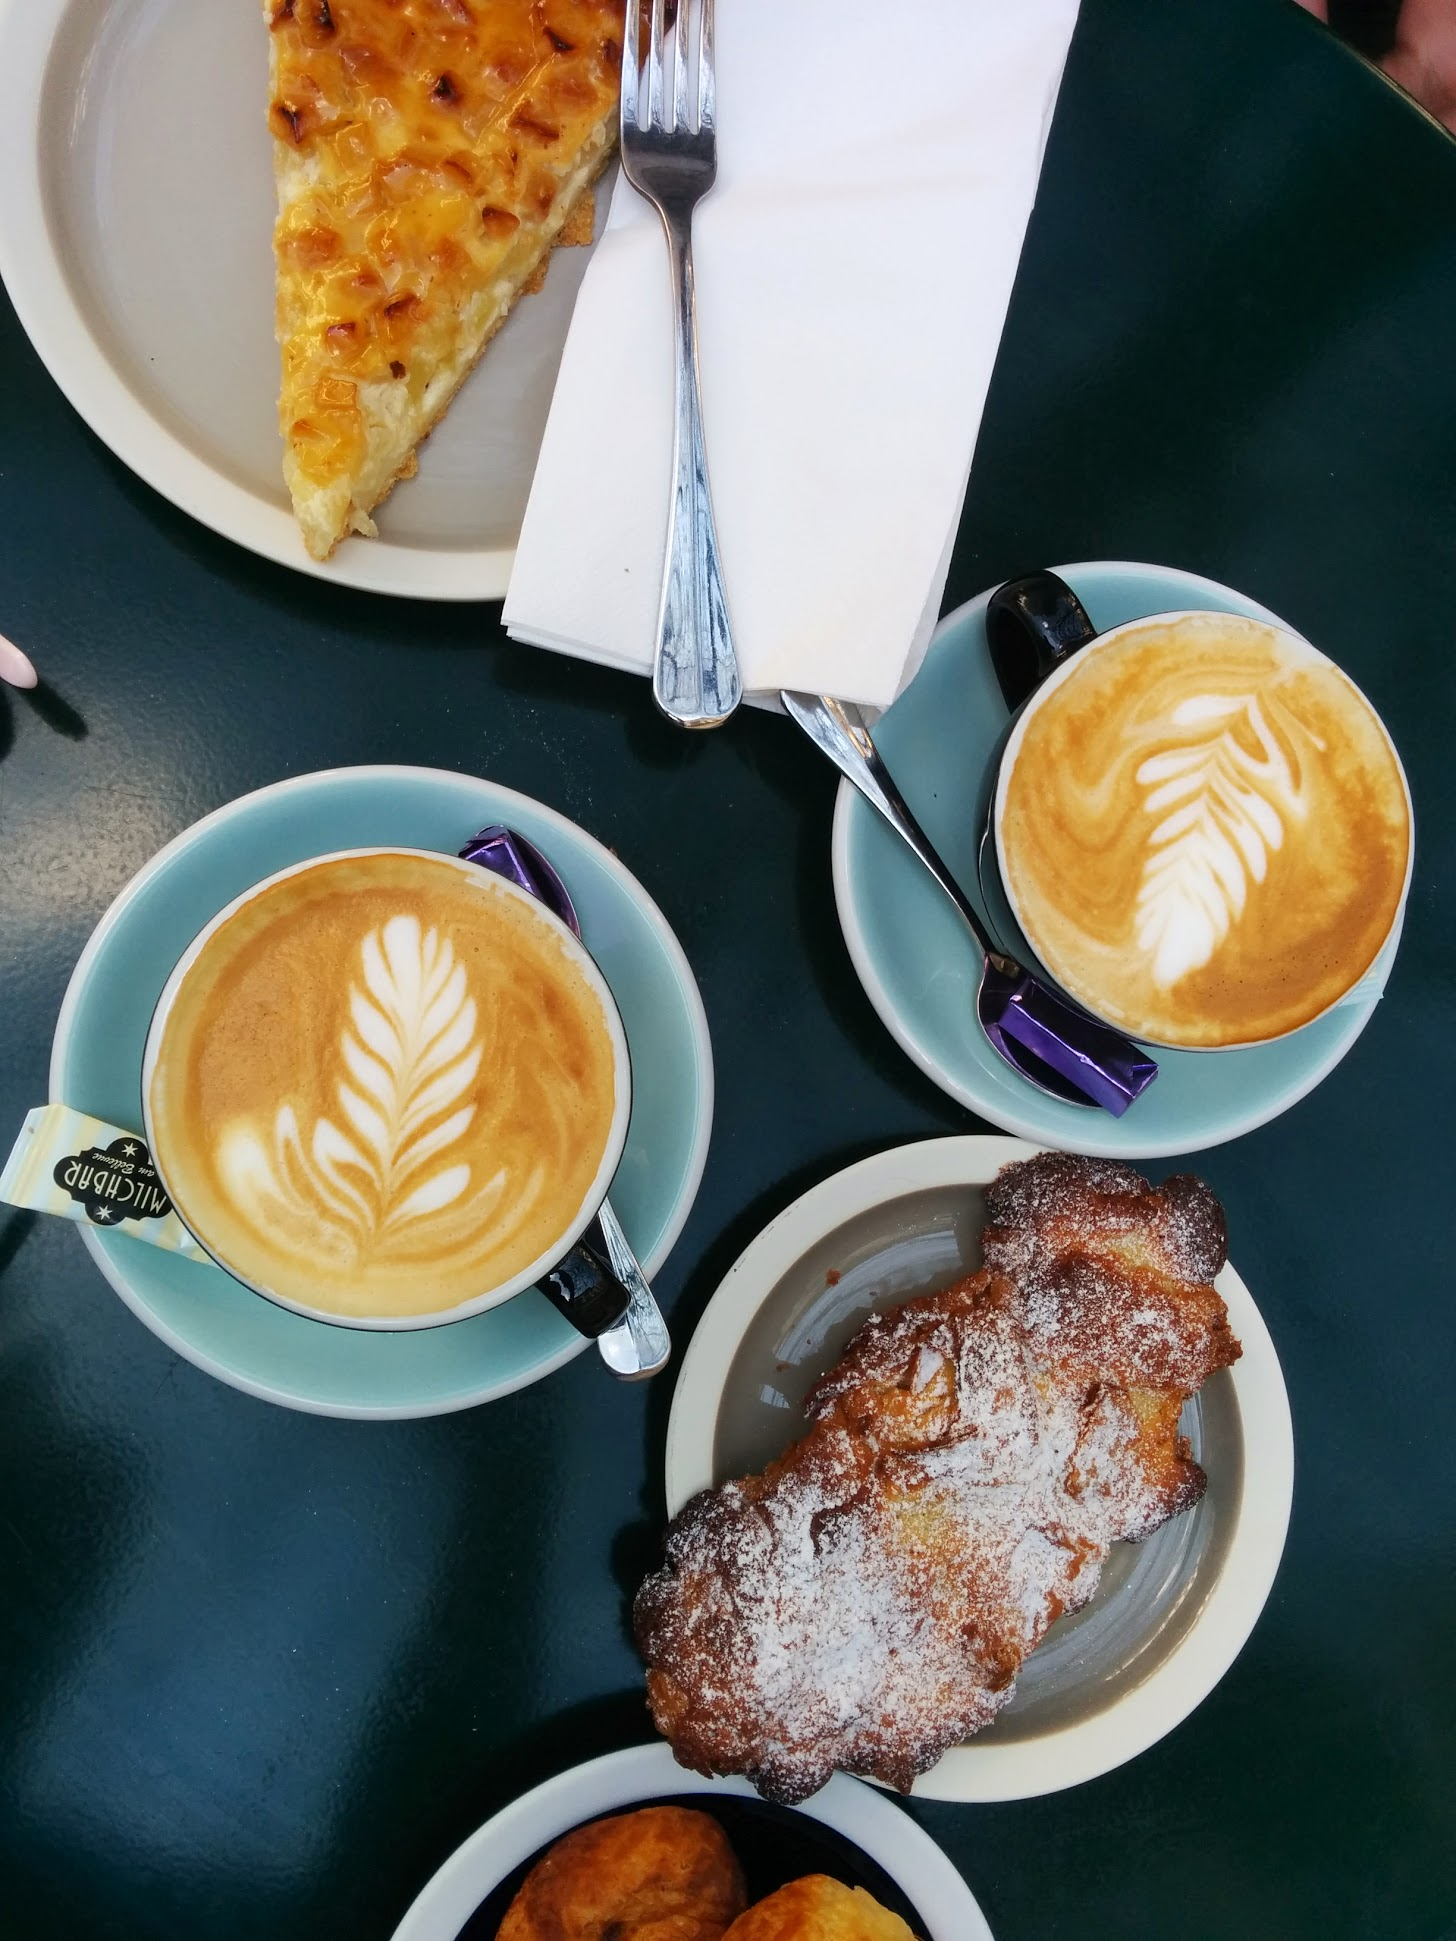 Best Coffee Shops in Zurich